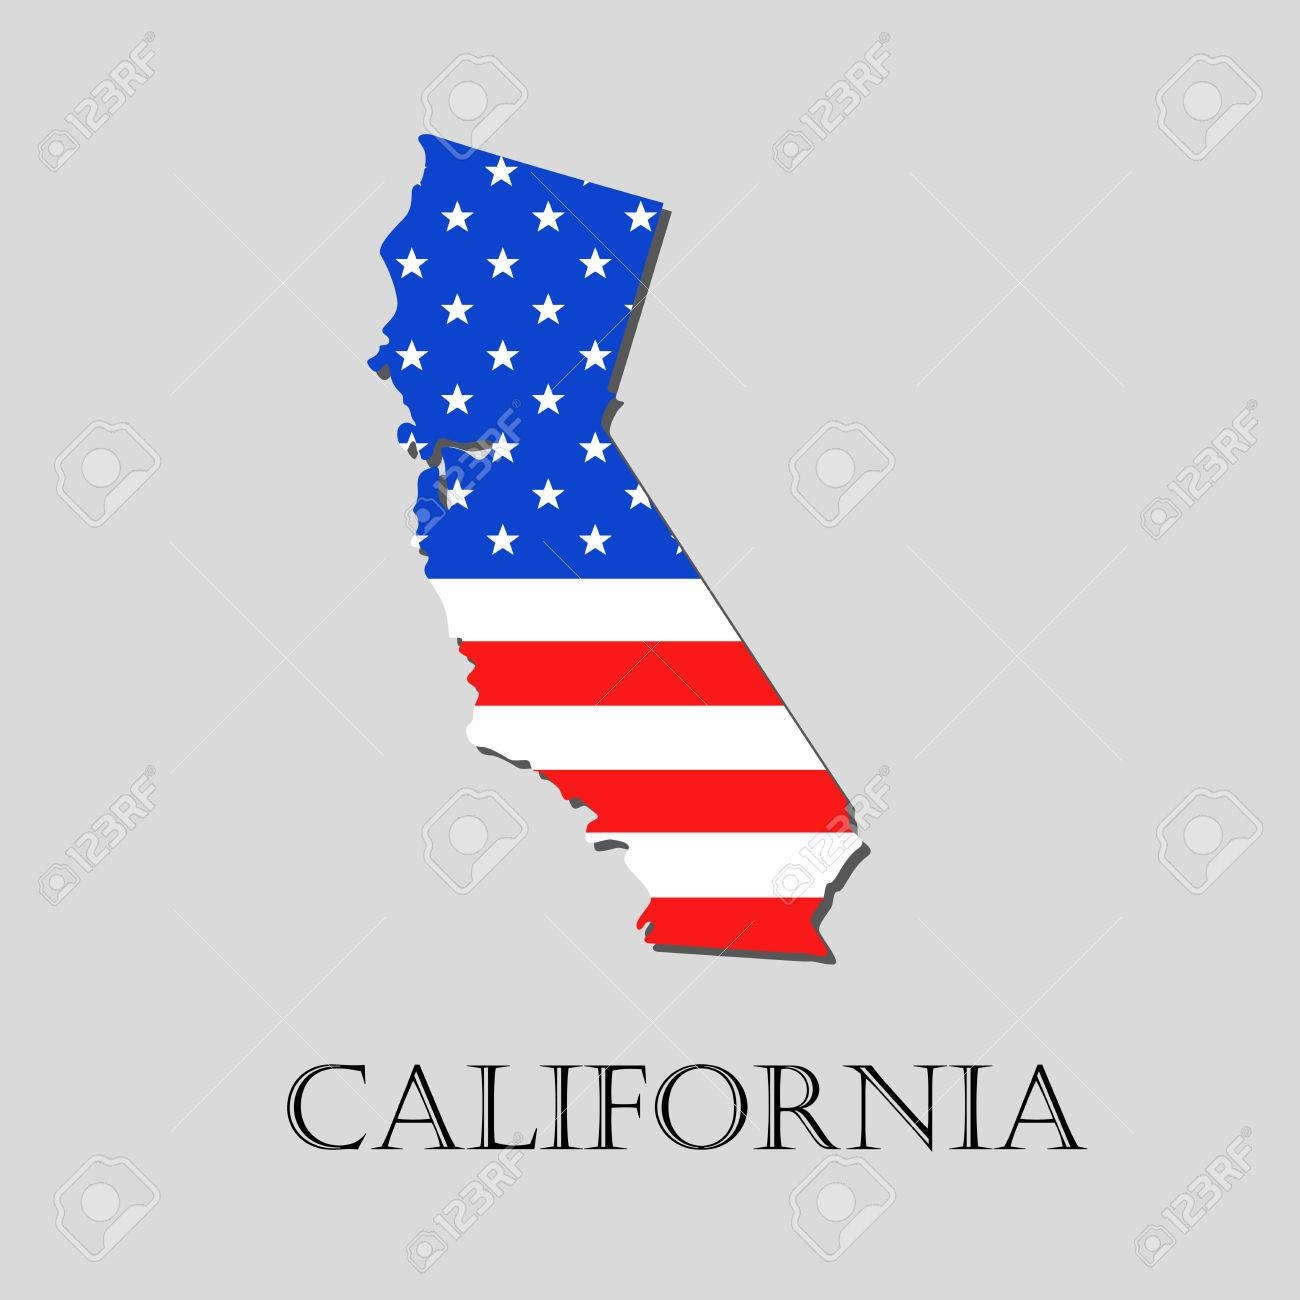 map of the state of california and american flag illustration rh 123rf com california state flag vector eps california bear flag vector art